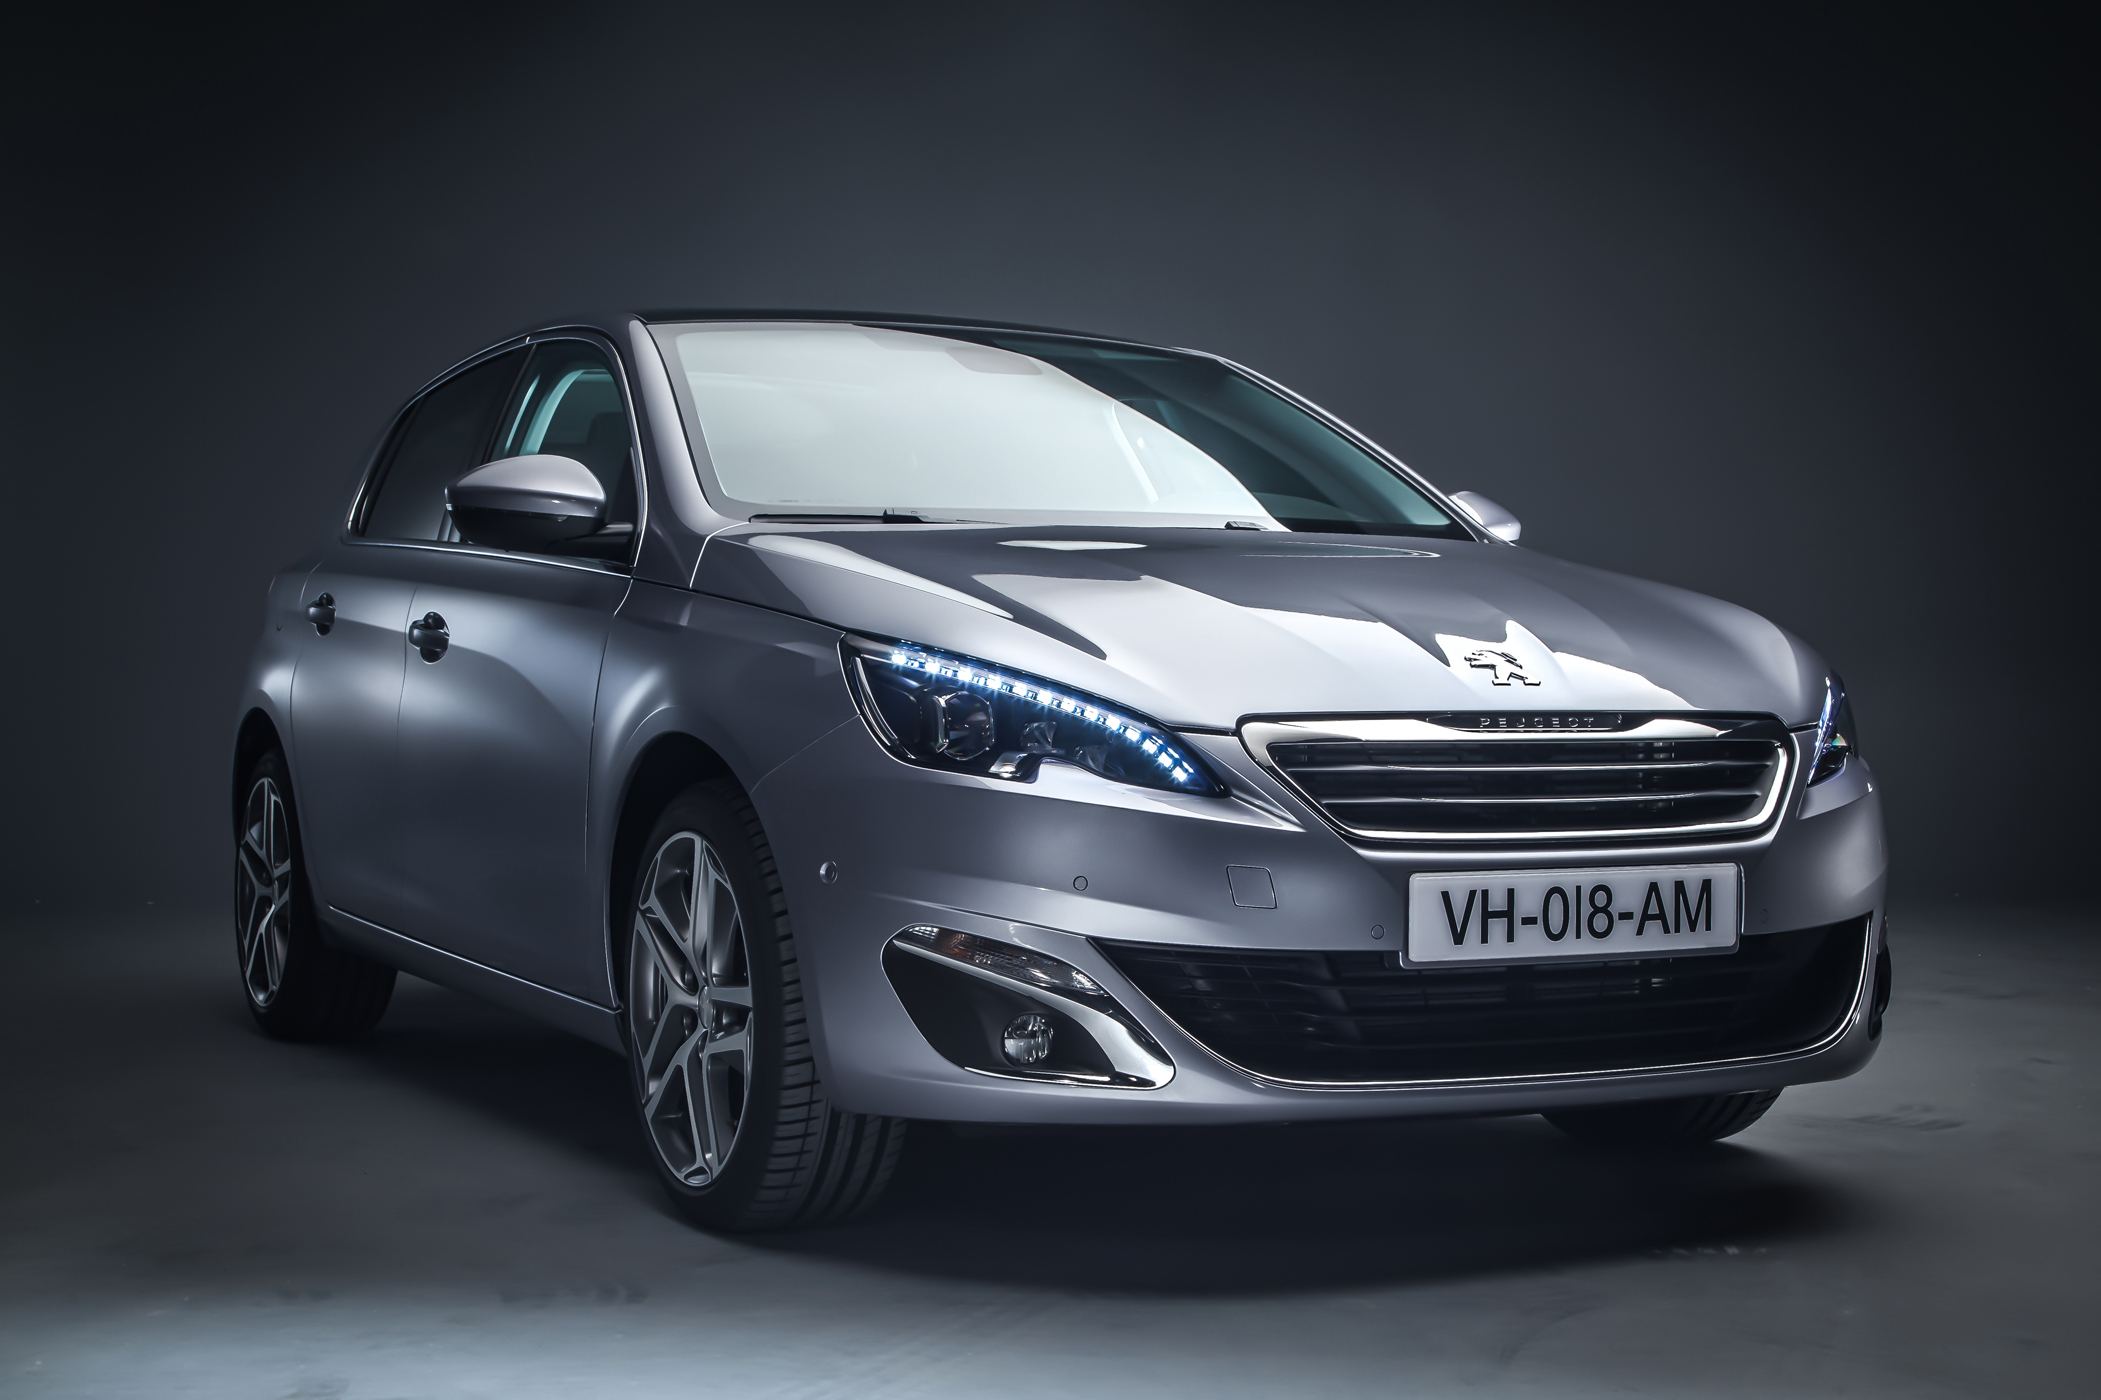 2013 peugeot 308 ii pictures information and specs auto. Black Bedroom Furniture Sets. Home Design Ideas